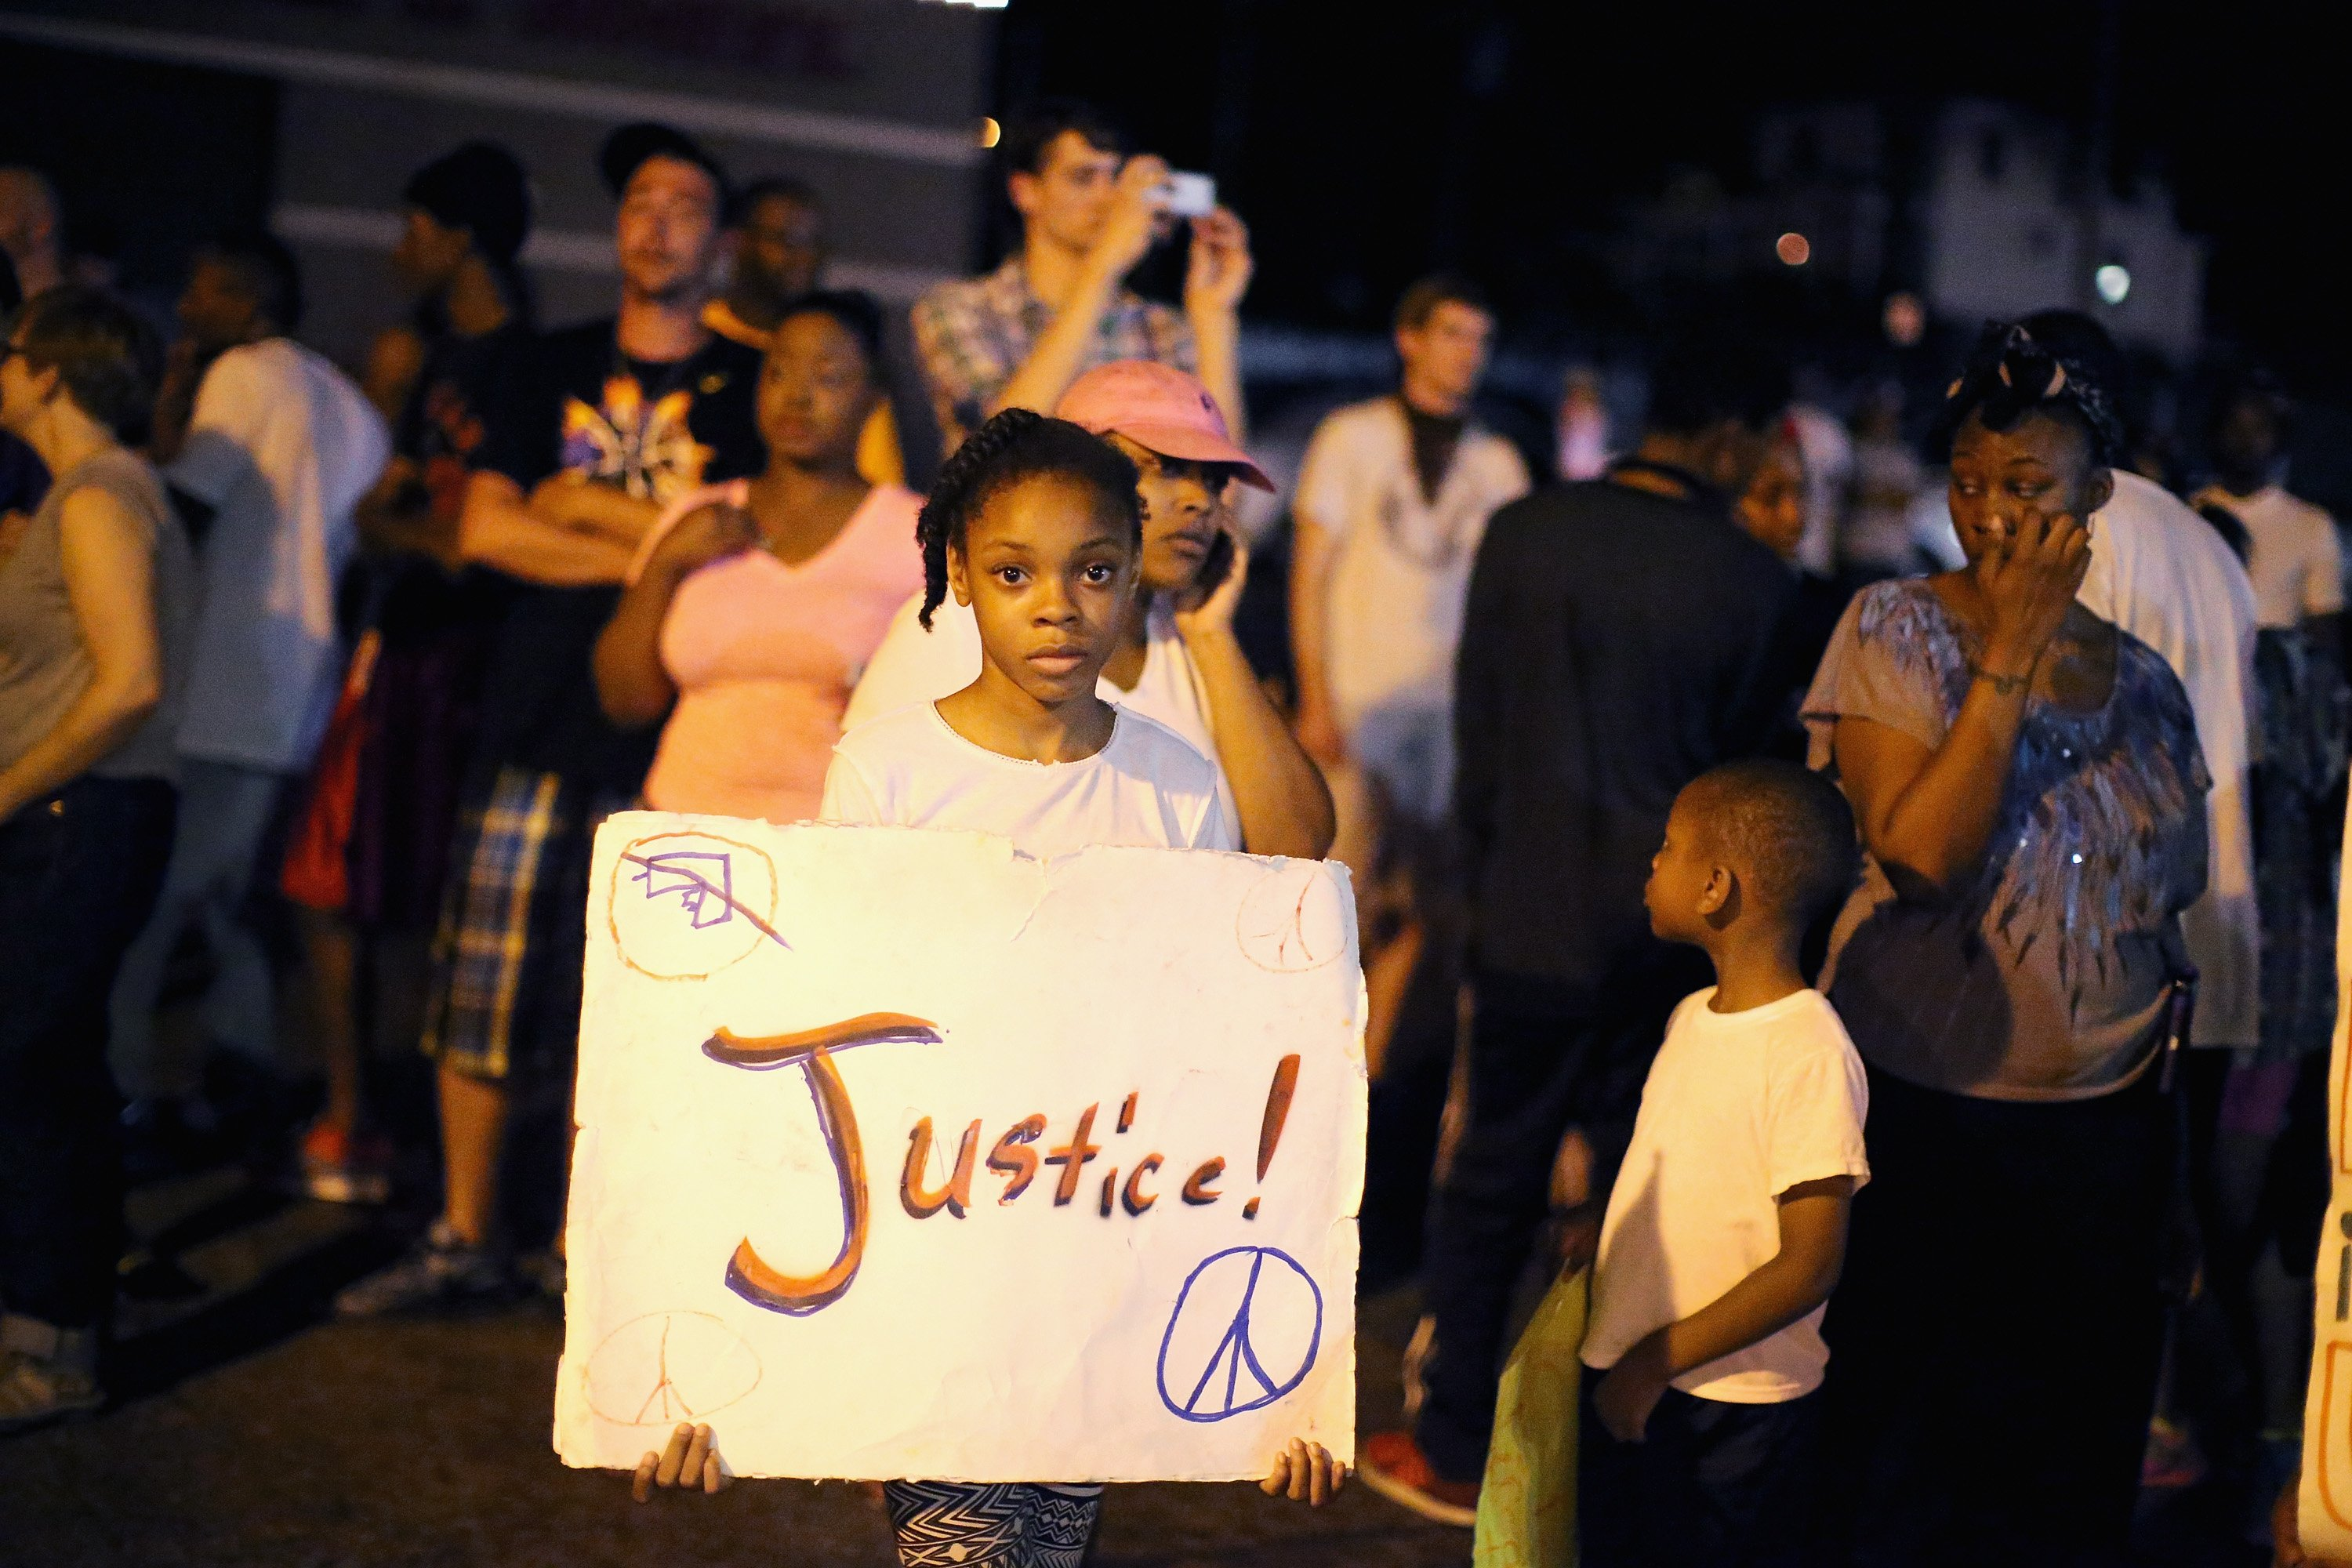 Demonstrators protest the death of Michael Brown on Aug. 22, 2014 in Ferguson, Mo.